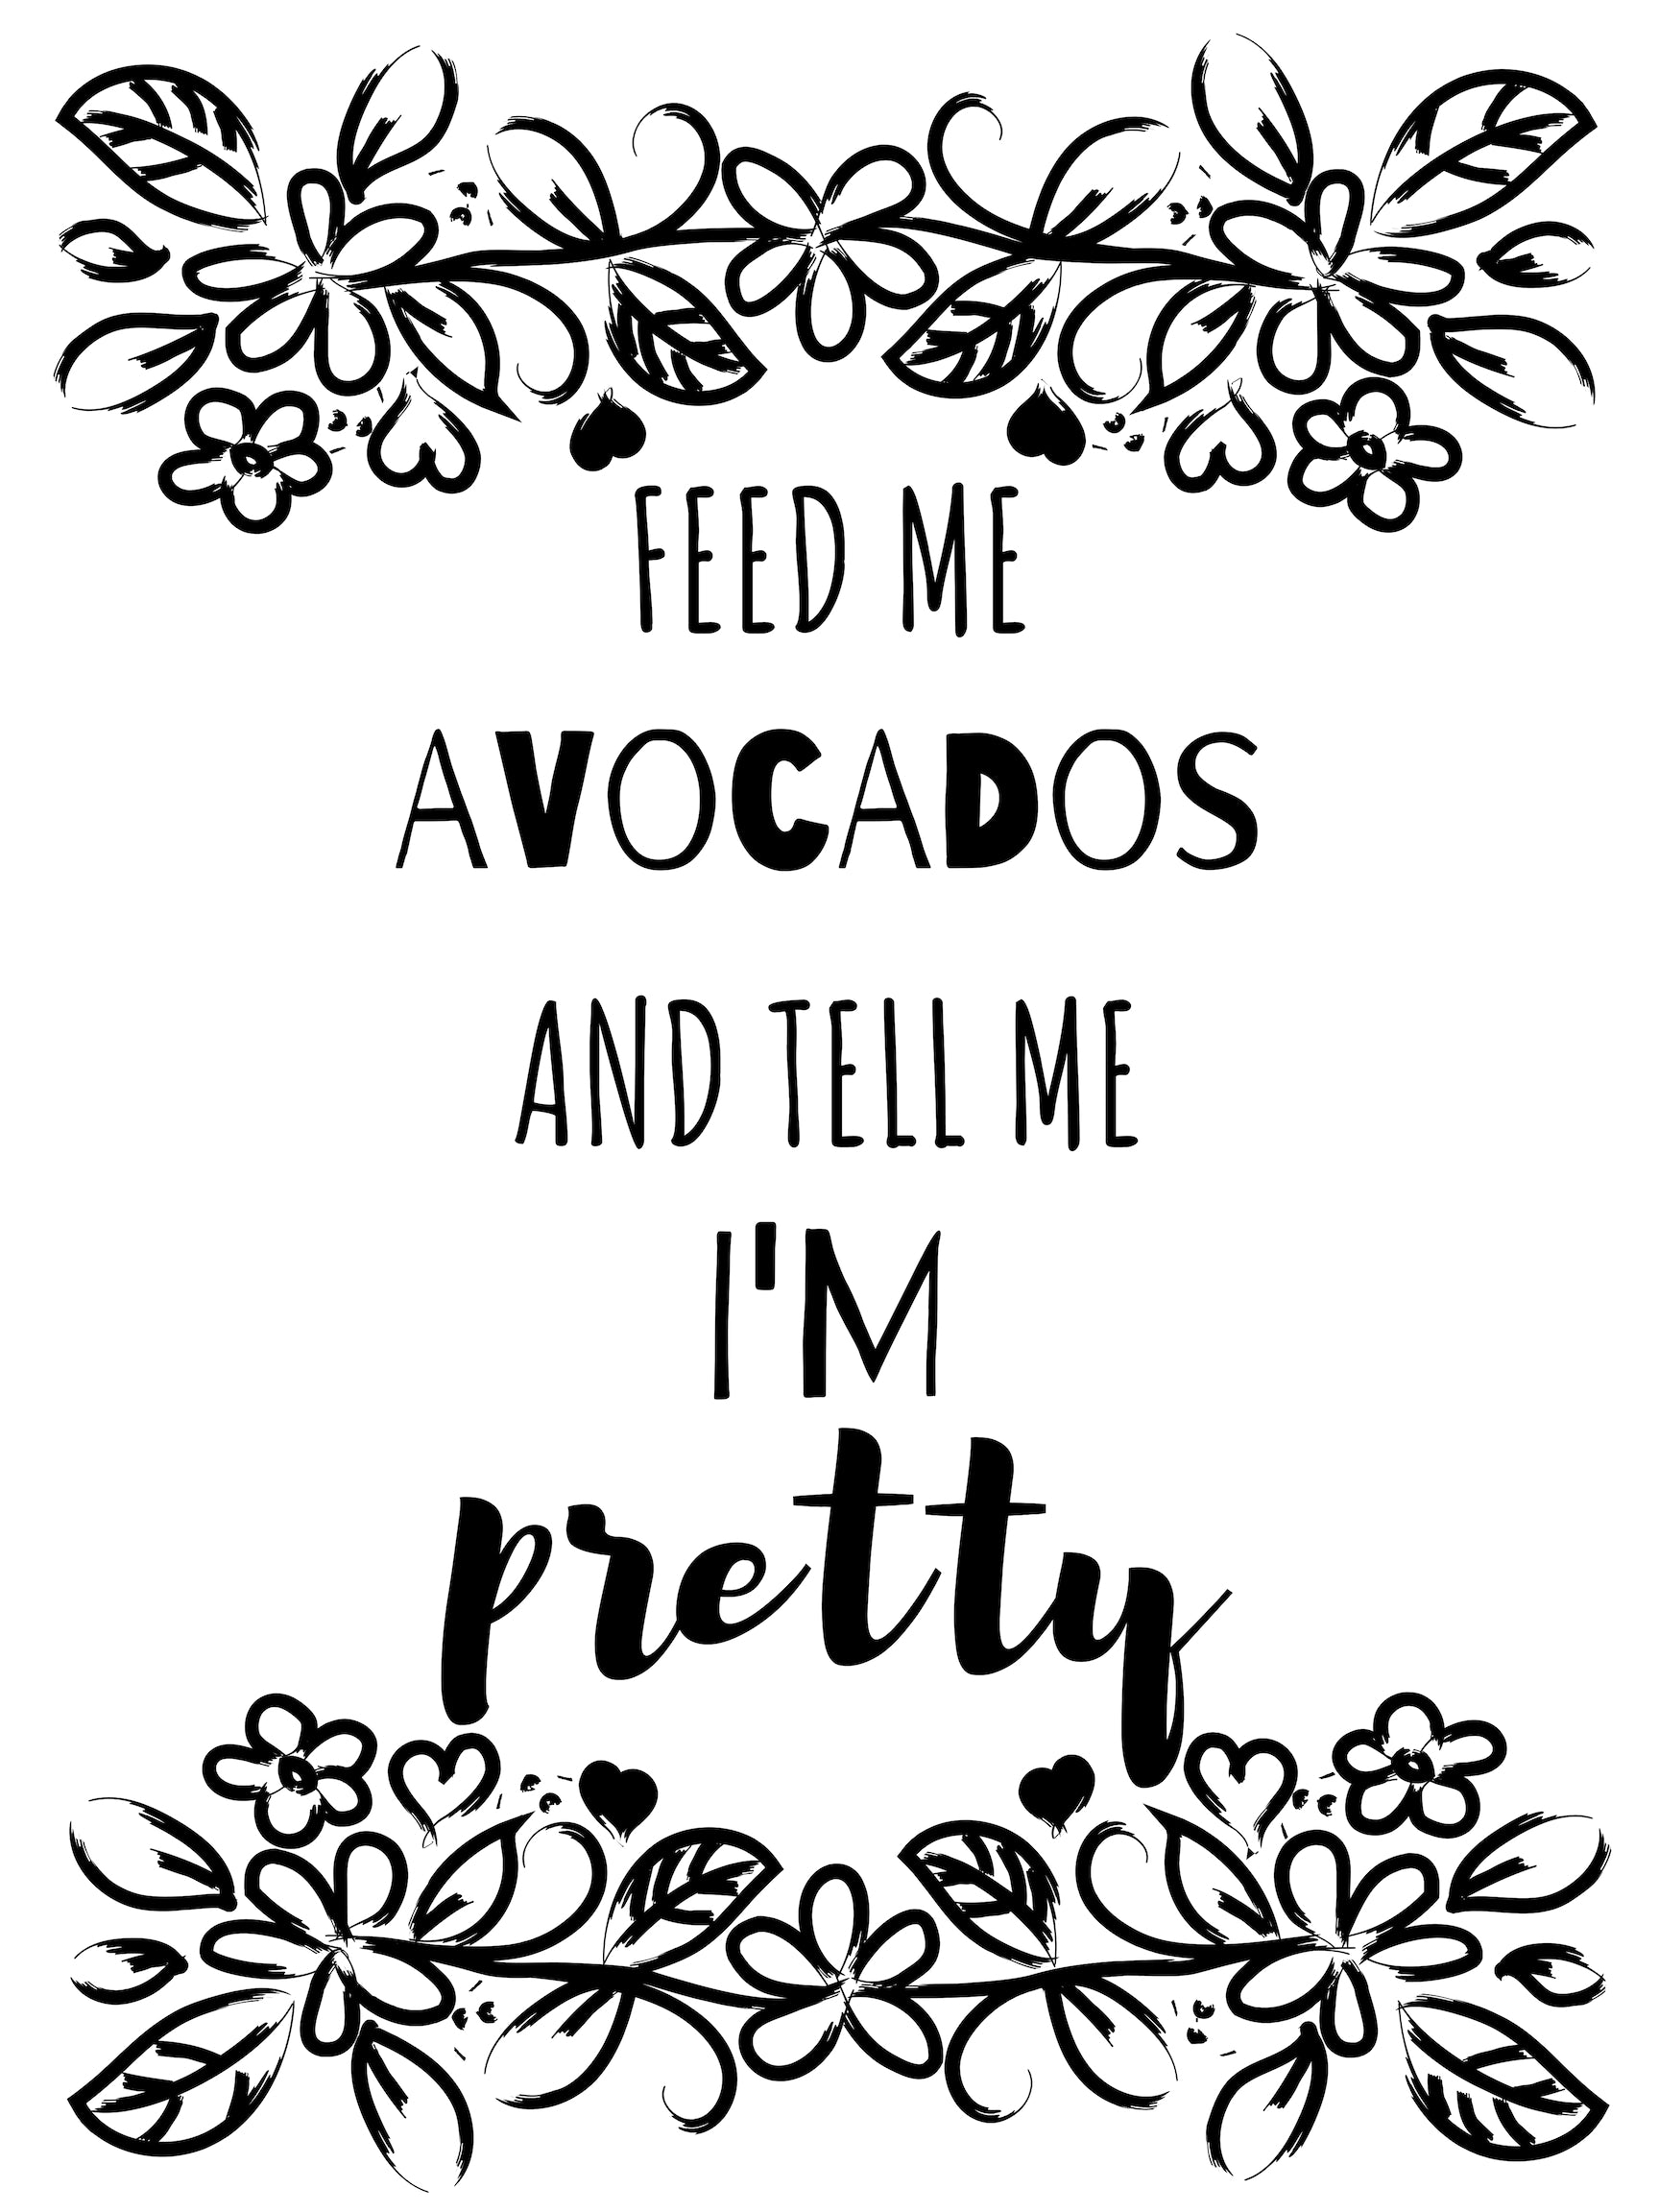 Feed Me Avocados and tell me I'm Pretty